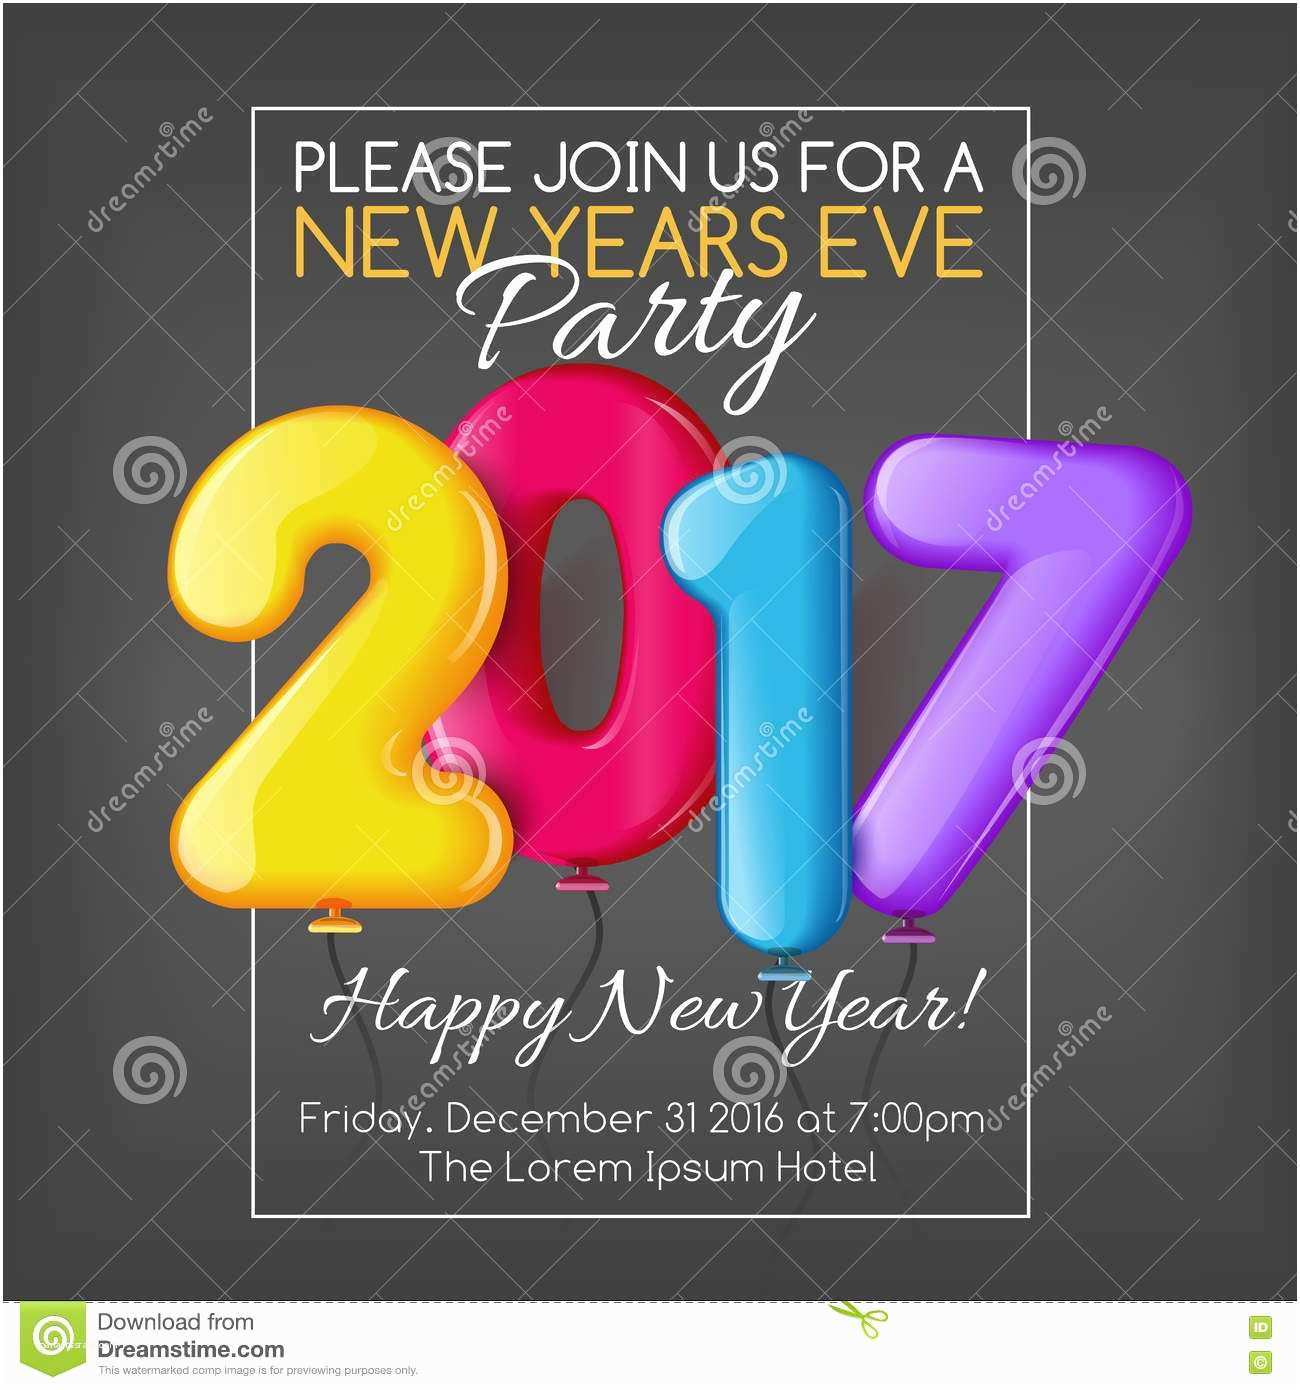 New Year Party Invitation Merry Christmas and Happy New Year 2017 Party Invitation